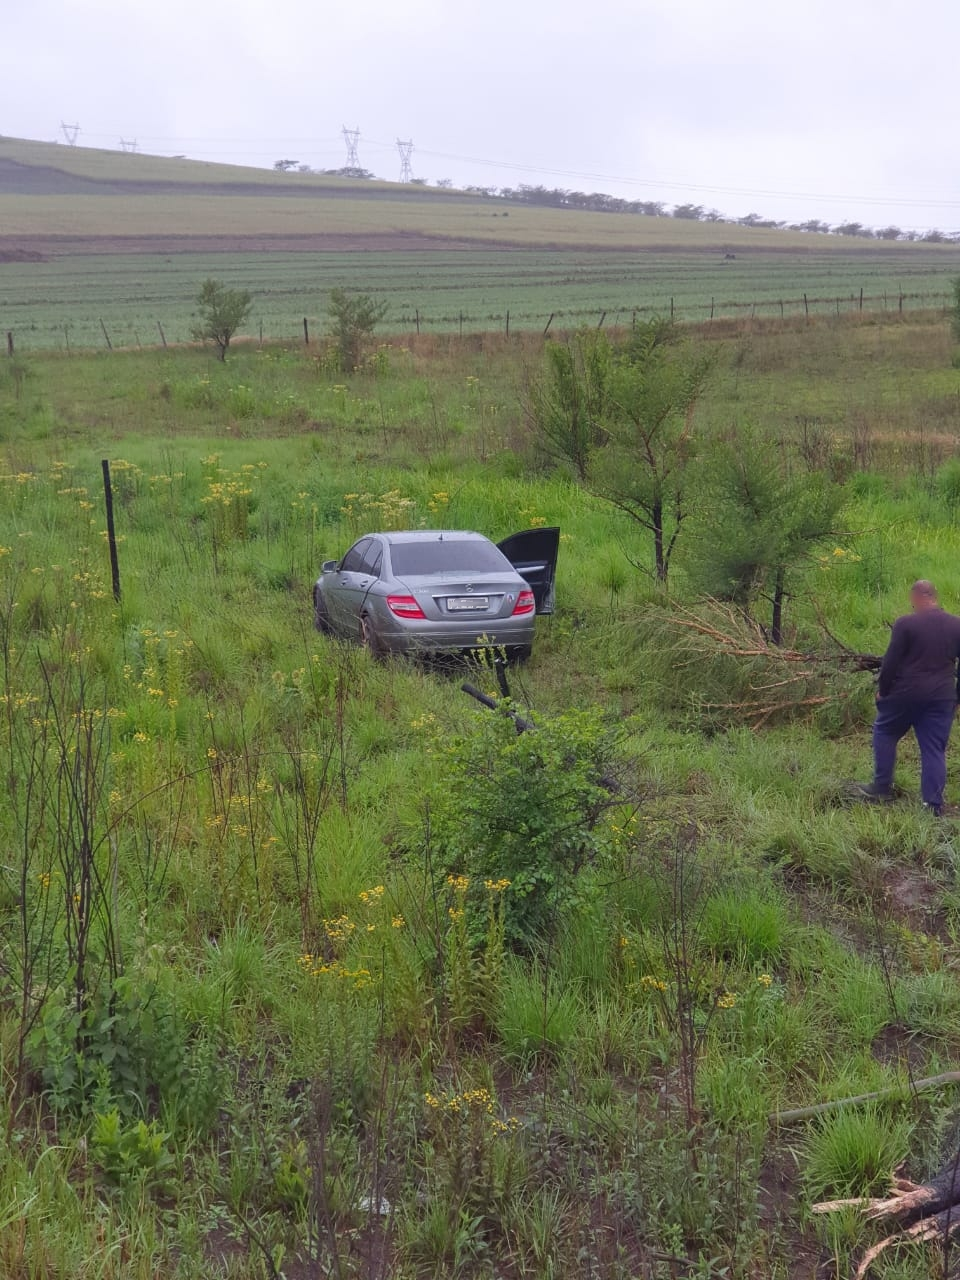 KwaZulu-Natal: Two injured after vehicle leaves road in the direction of New Hanover in Pietermaritzburg.